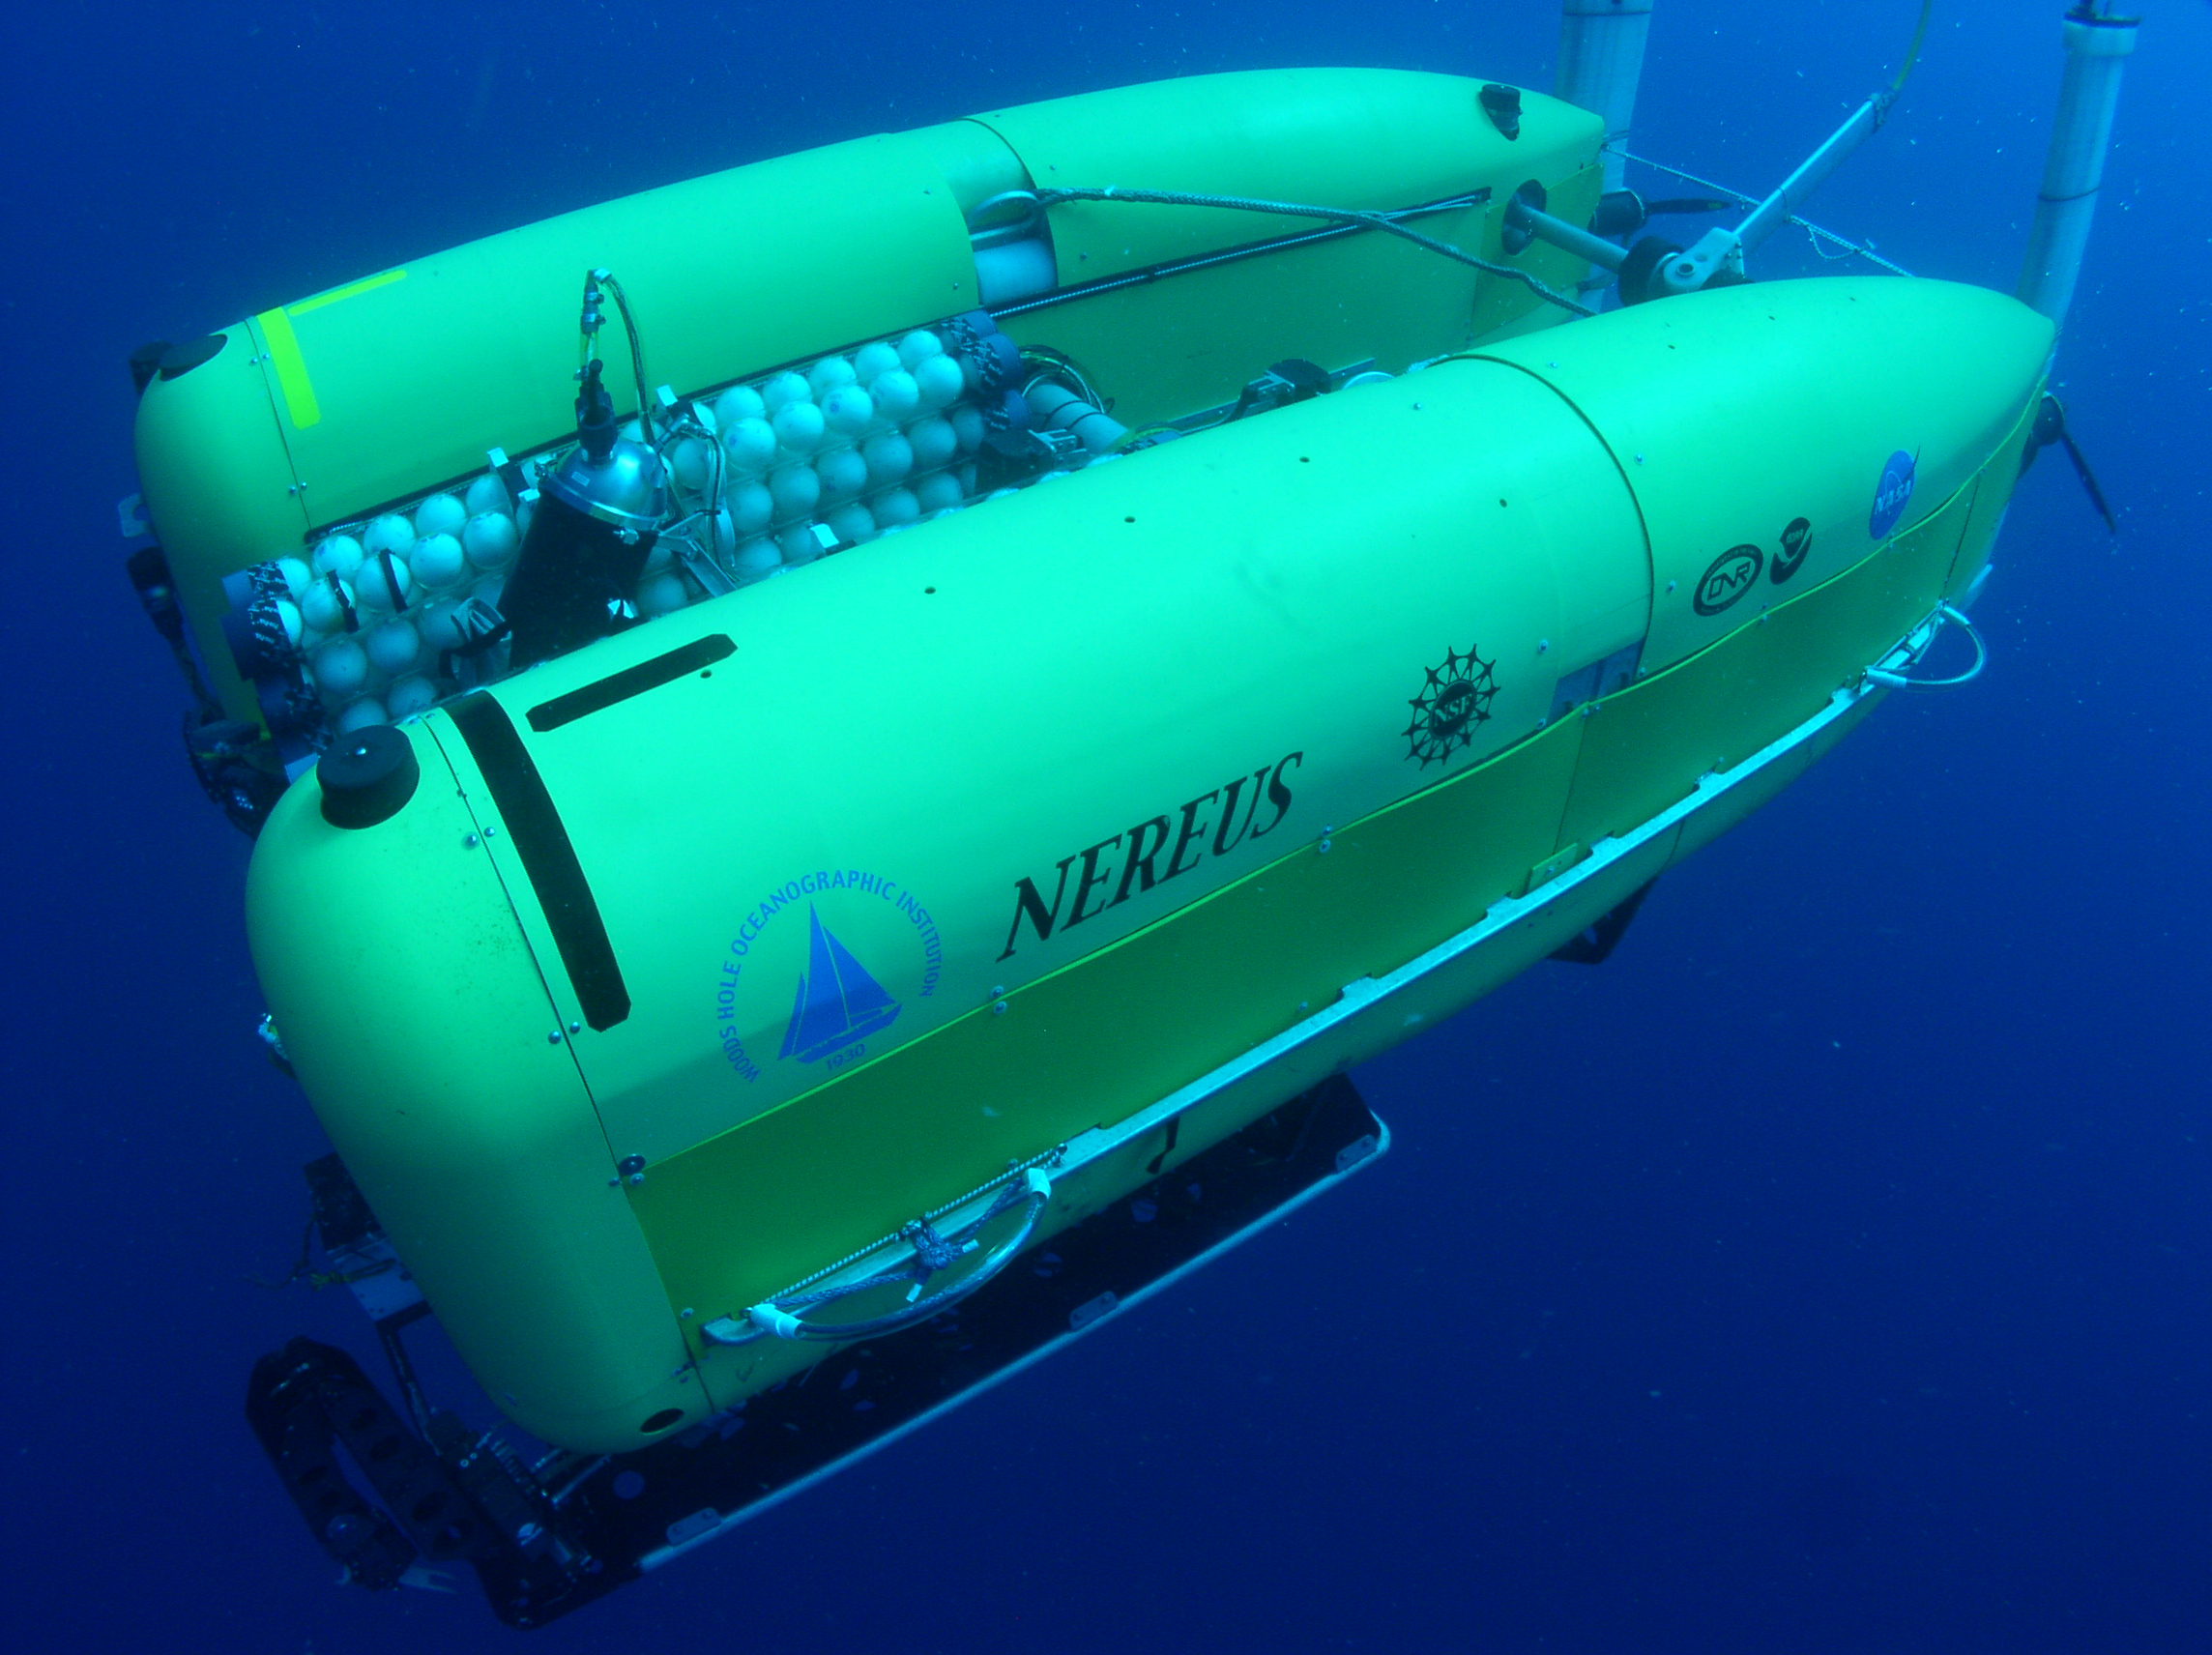 Scientists explore one of earths deepest ocean trenches deepest ocean trenches researchers will use the deep submergence vehicle nereus in their explorations credit whoi publicscrutiny Images